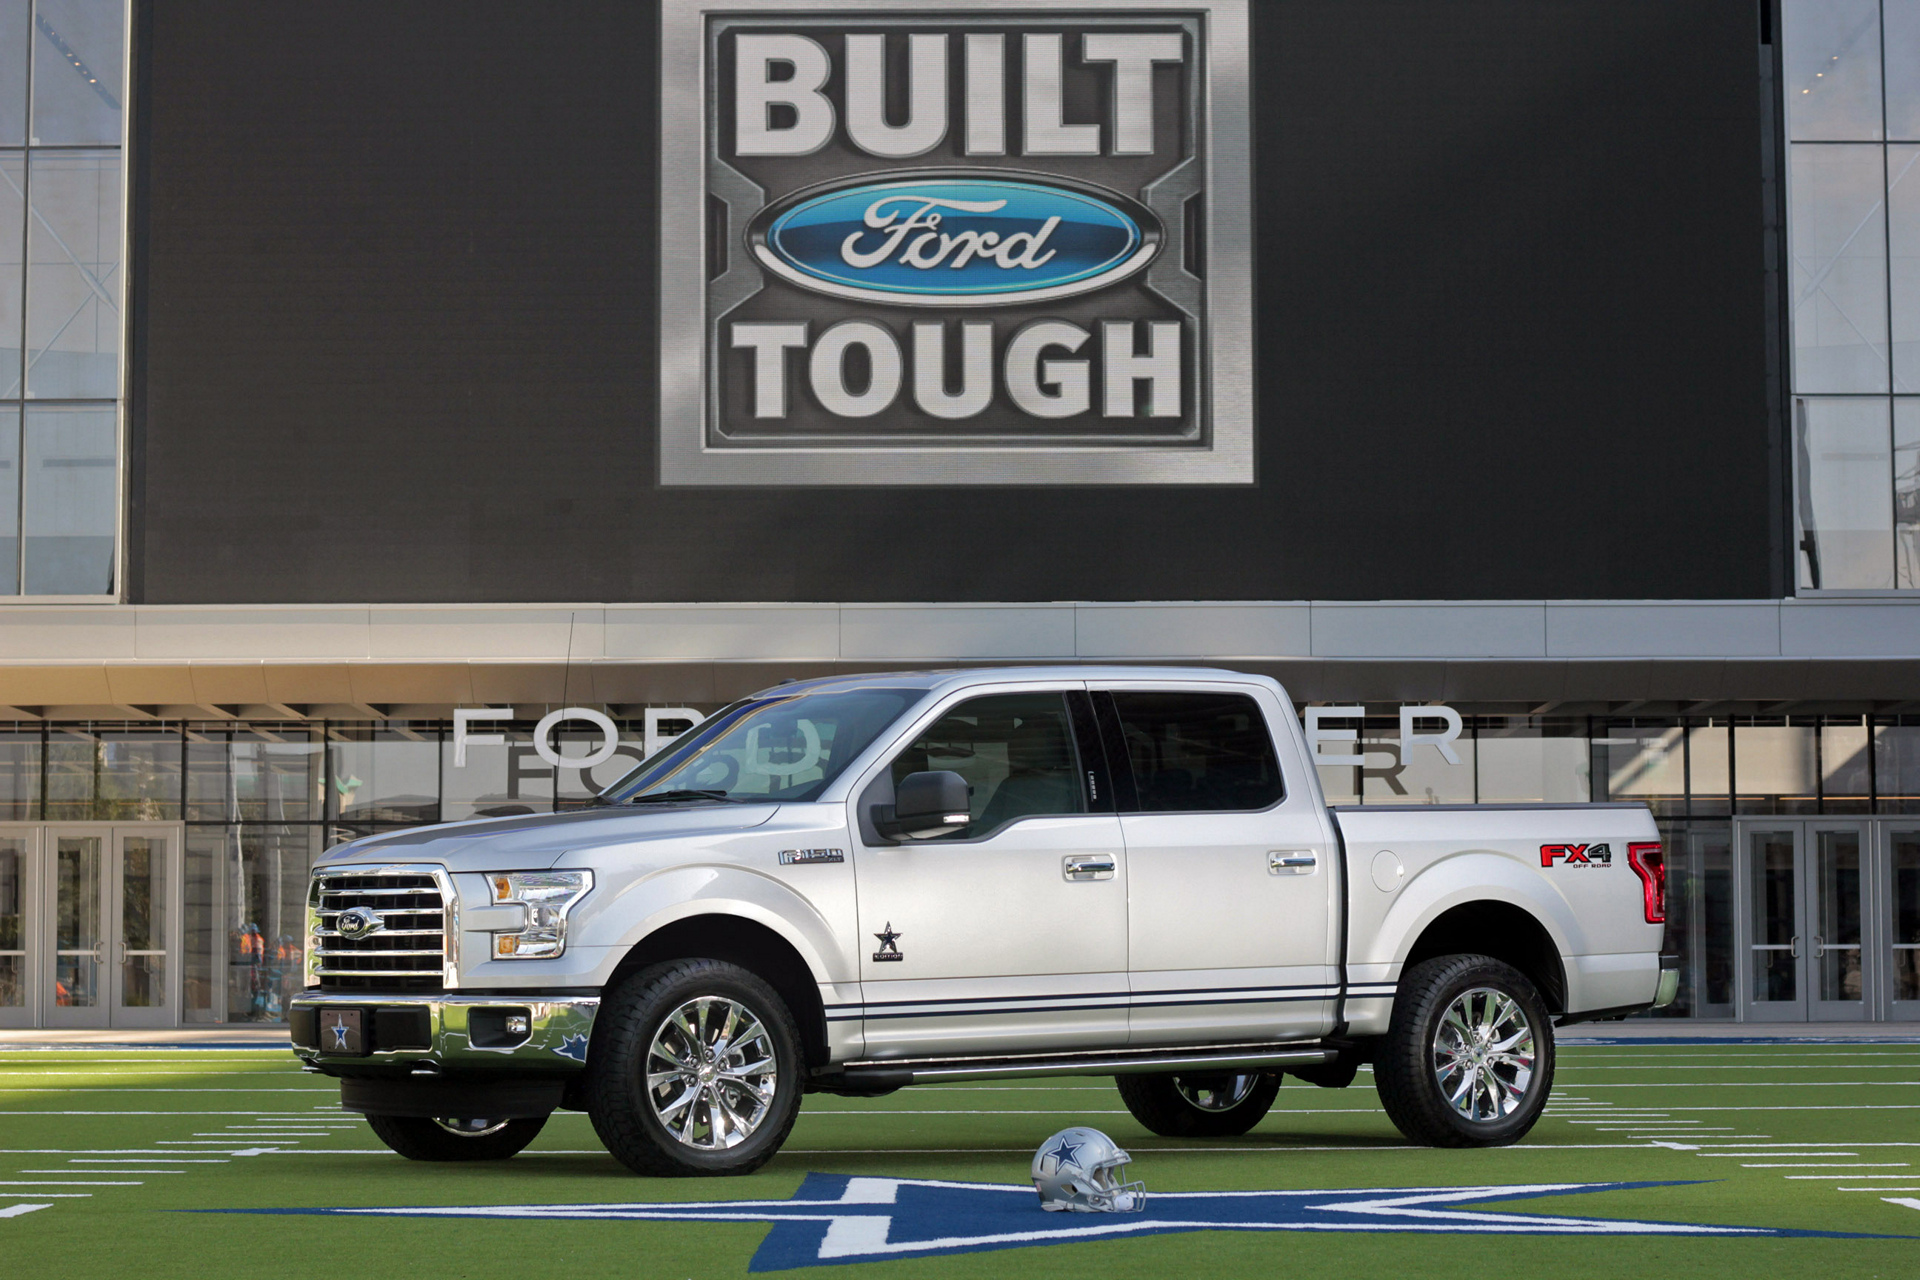 Ford F-150 Dallas Cowboys Edition © Ford Motor CompanyFord F-150 Dallas Cowboys Edition © Ford Motor Company